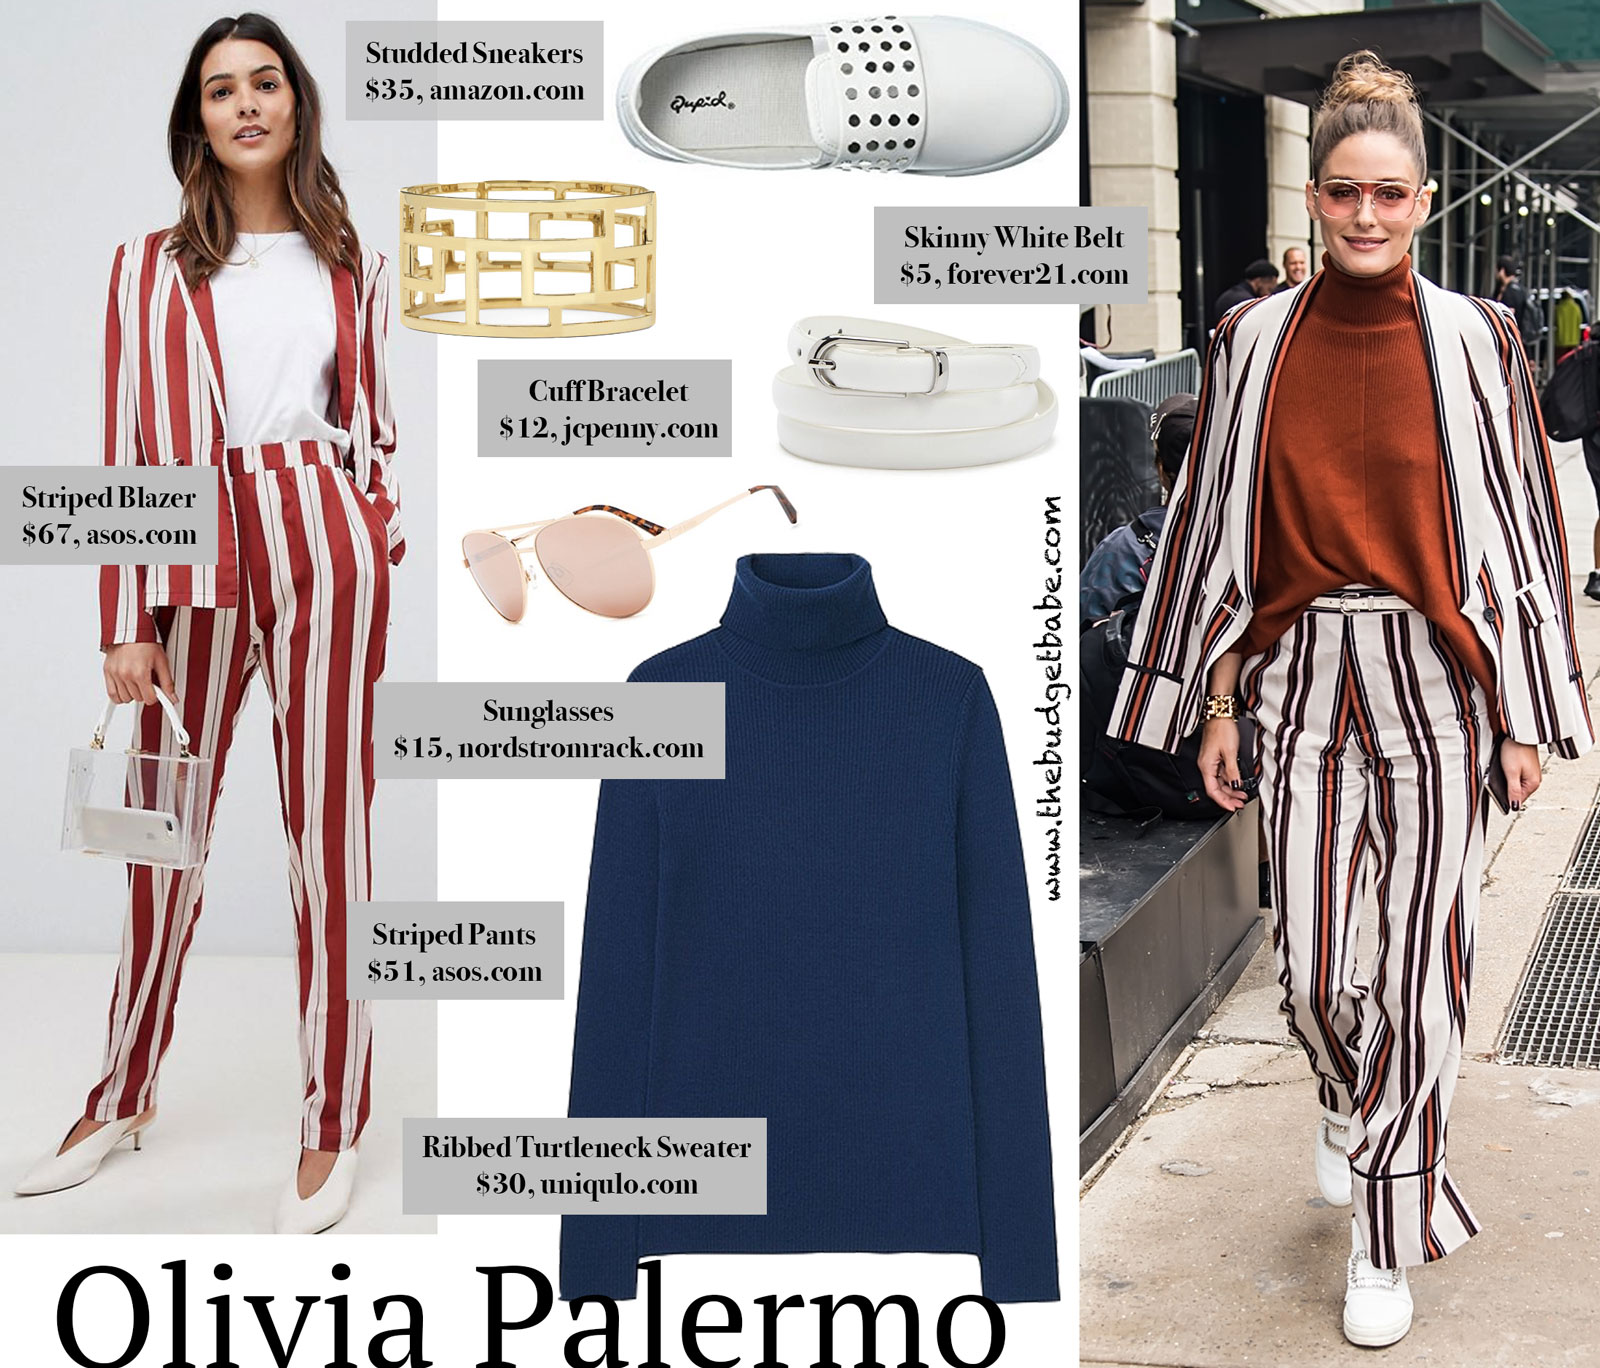 Olivia Palermo Striped Suit Look for Less